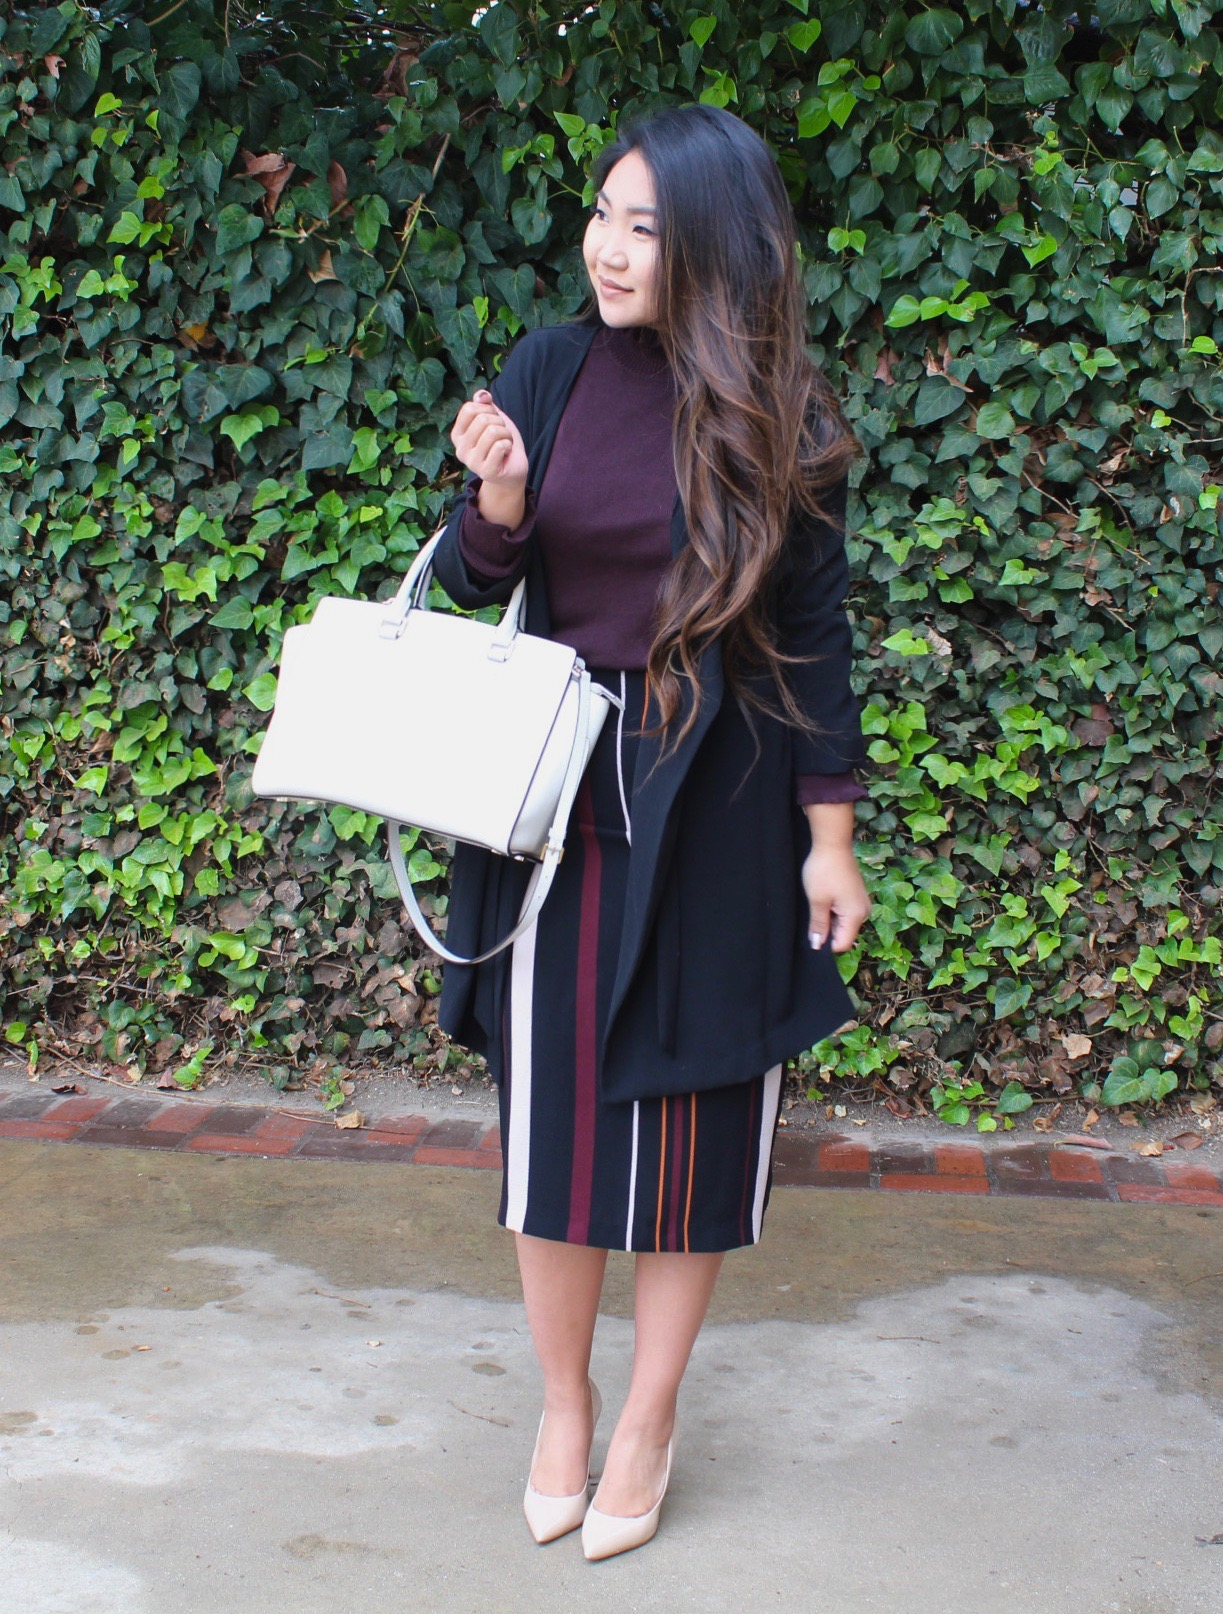 Modest church Outfit - Who What Wear Midi Stripe Pencil Skirt